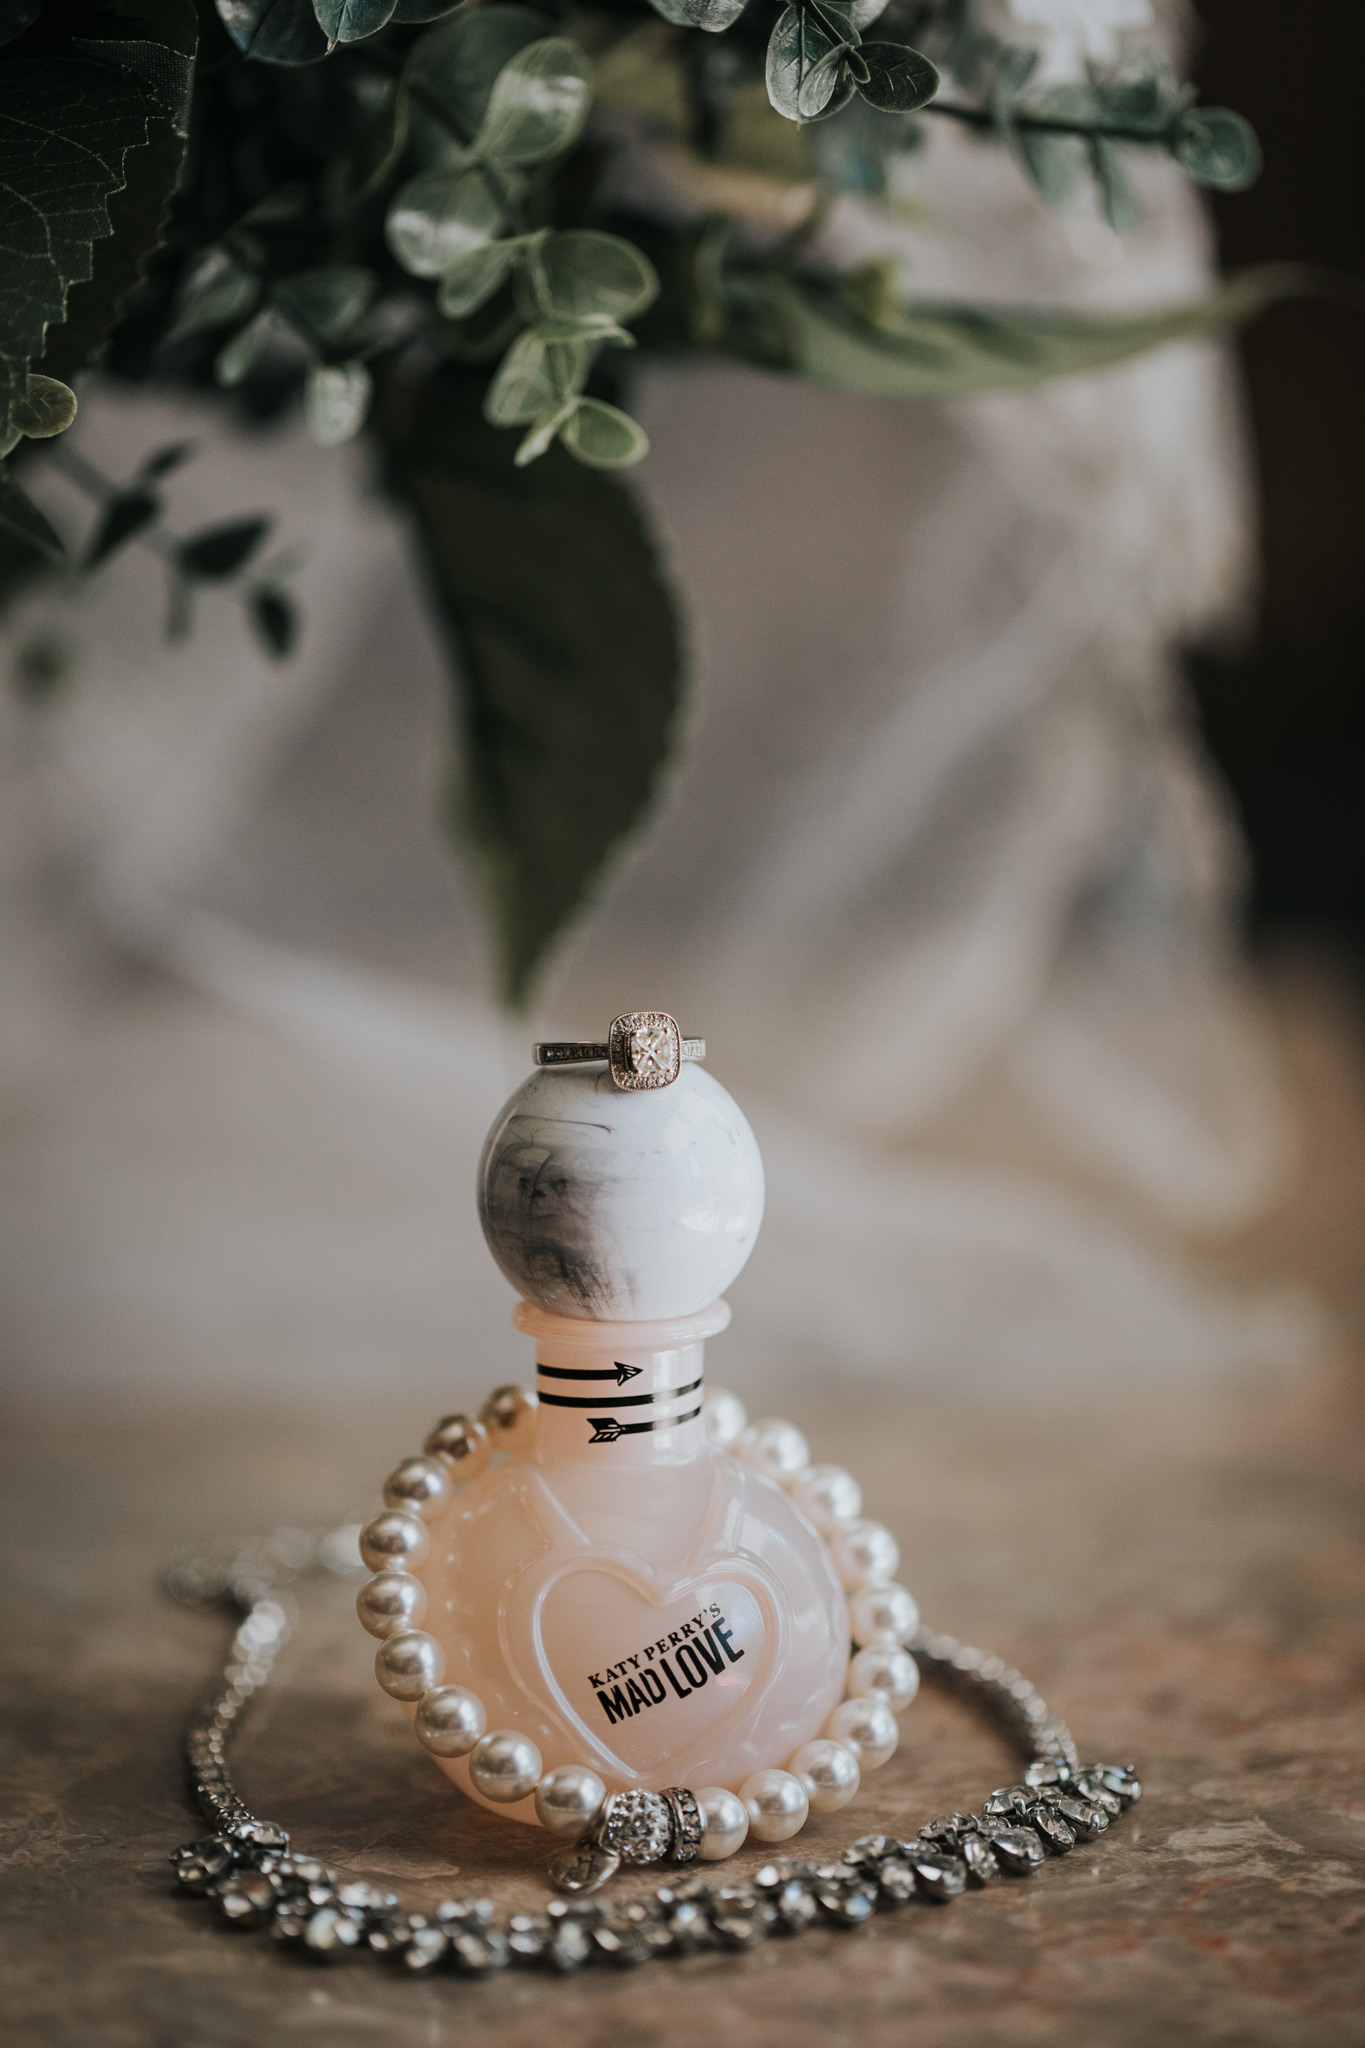 perfume bottle with brides jewelry